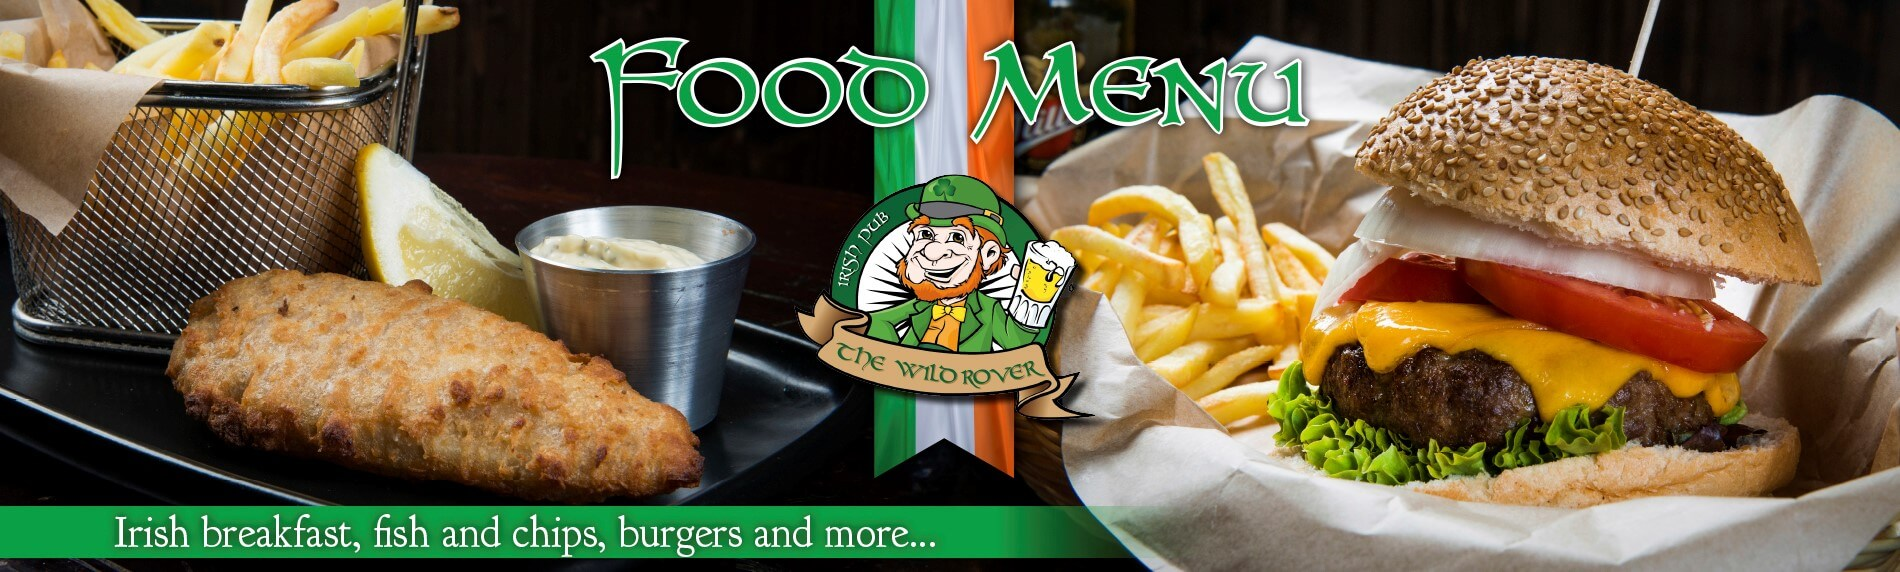 Food menu irish breakfast, fish and chips, burgers and more